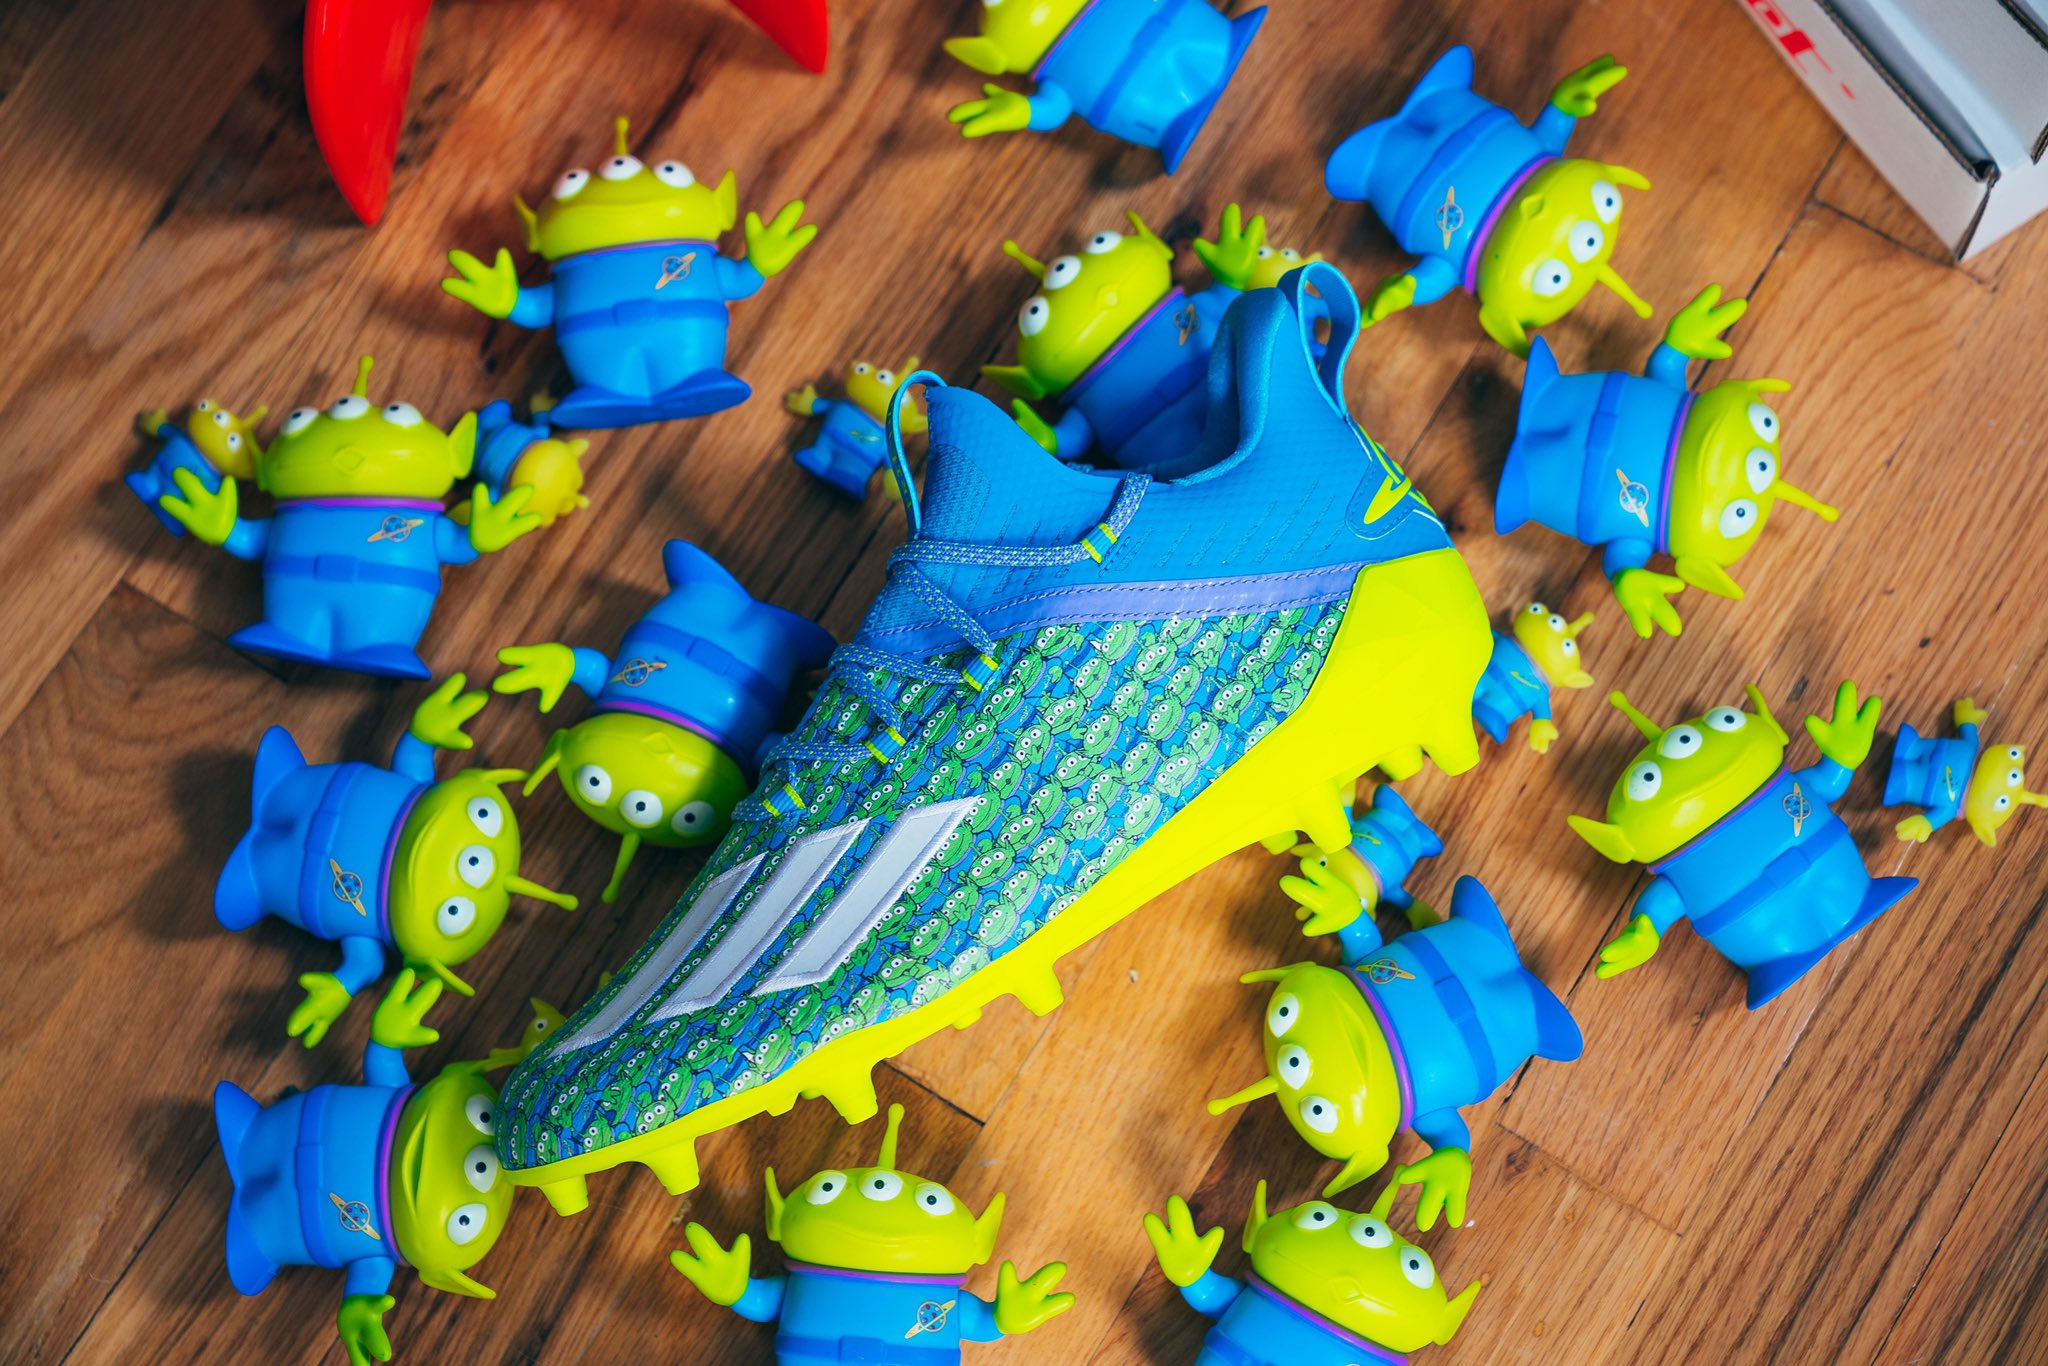 Adidas Football US Pixar Cleats 2